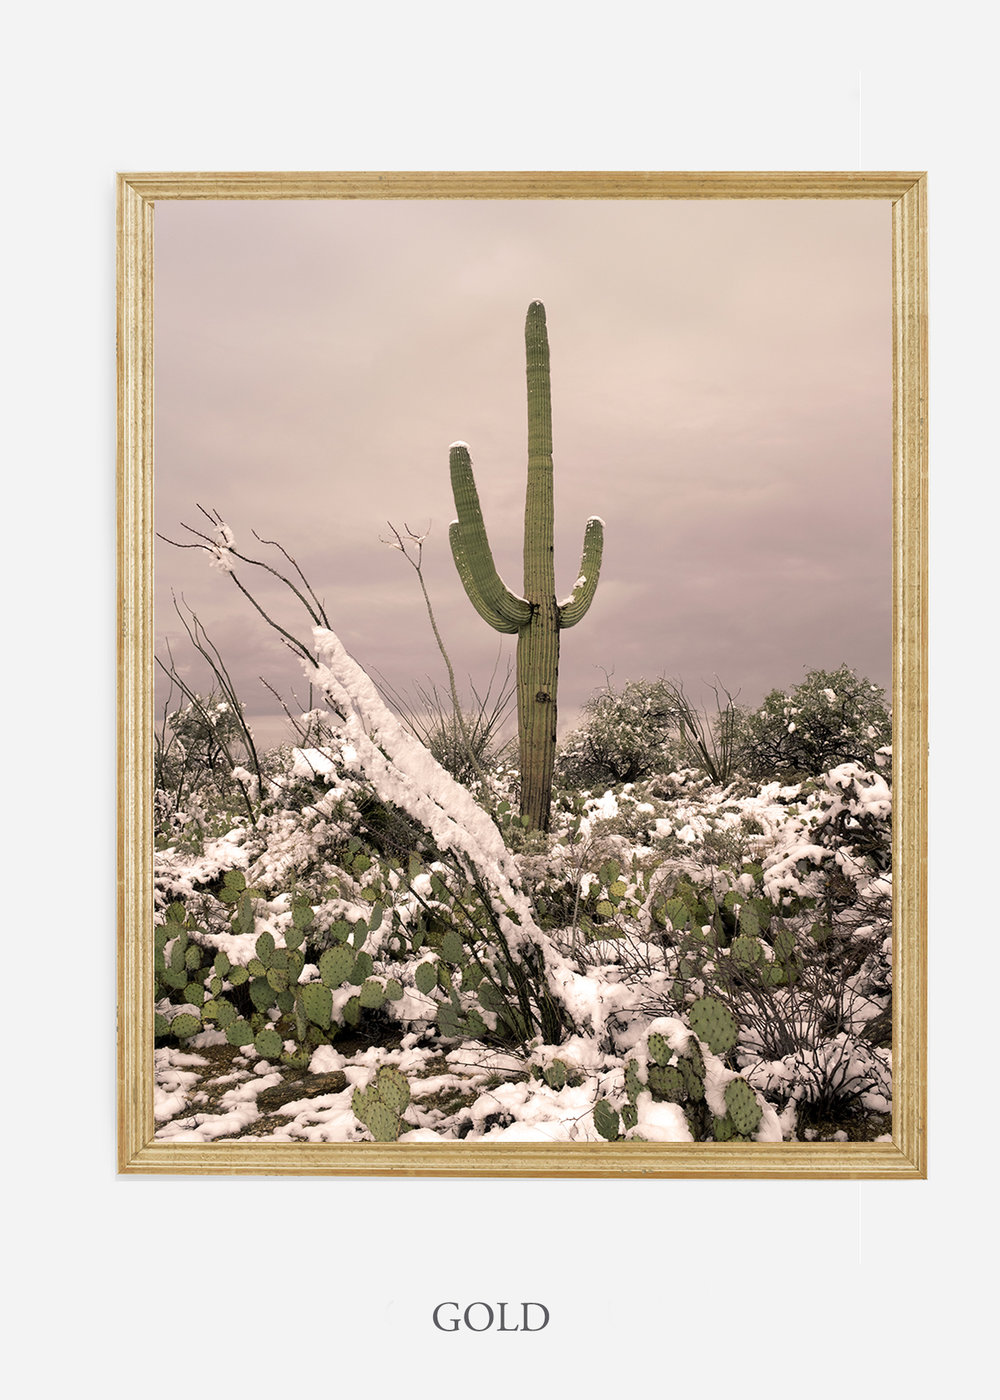 nomat-goldframe-saguaroNo.4-wildercalifornia-art-wallart-cactusprint-homedecor-prints-arizona-botanical-artwork-interiordesign.jpg